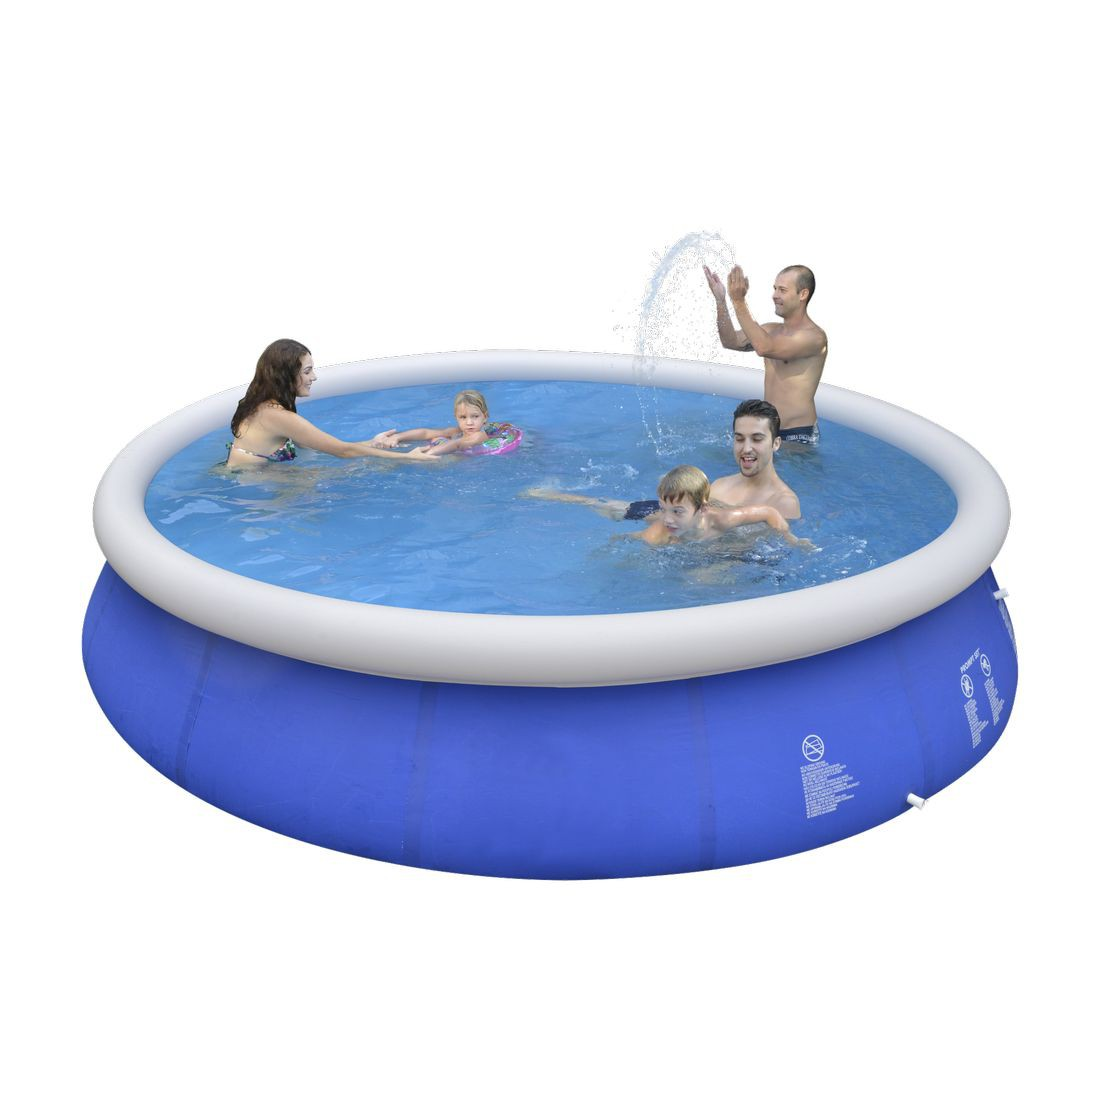 Jilong marin blue 450 quick up pool 450x90cm watersport for Quick up pool oval